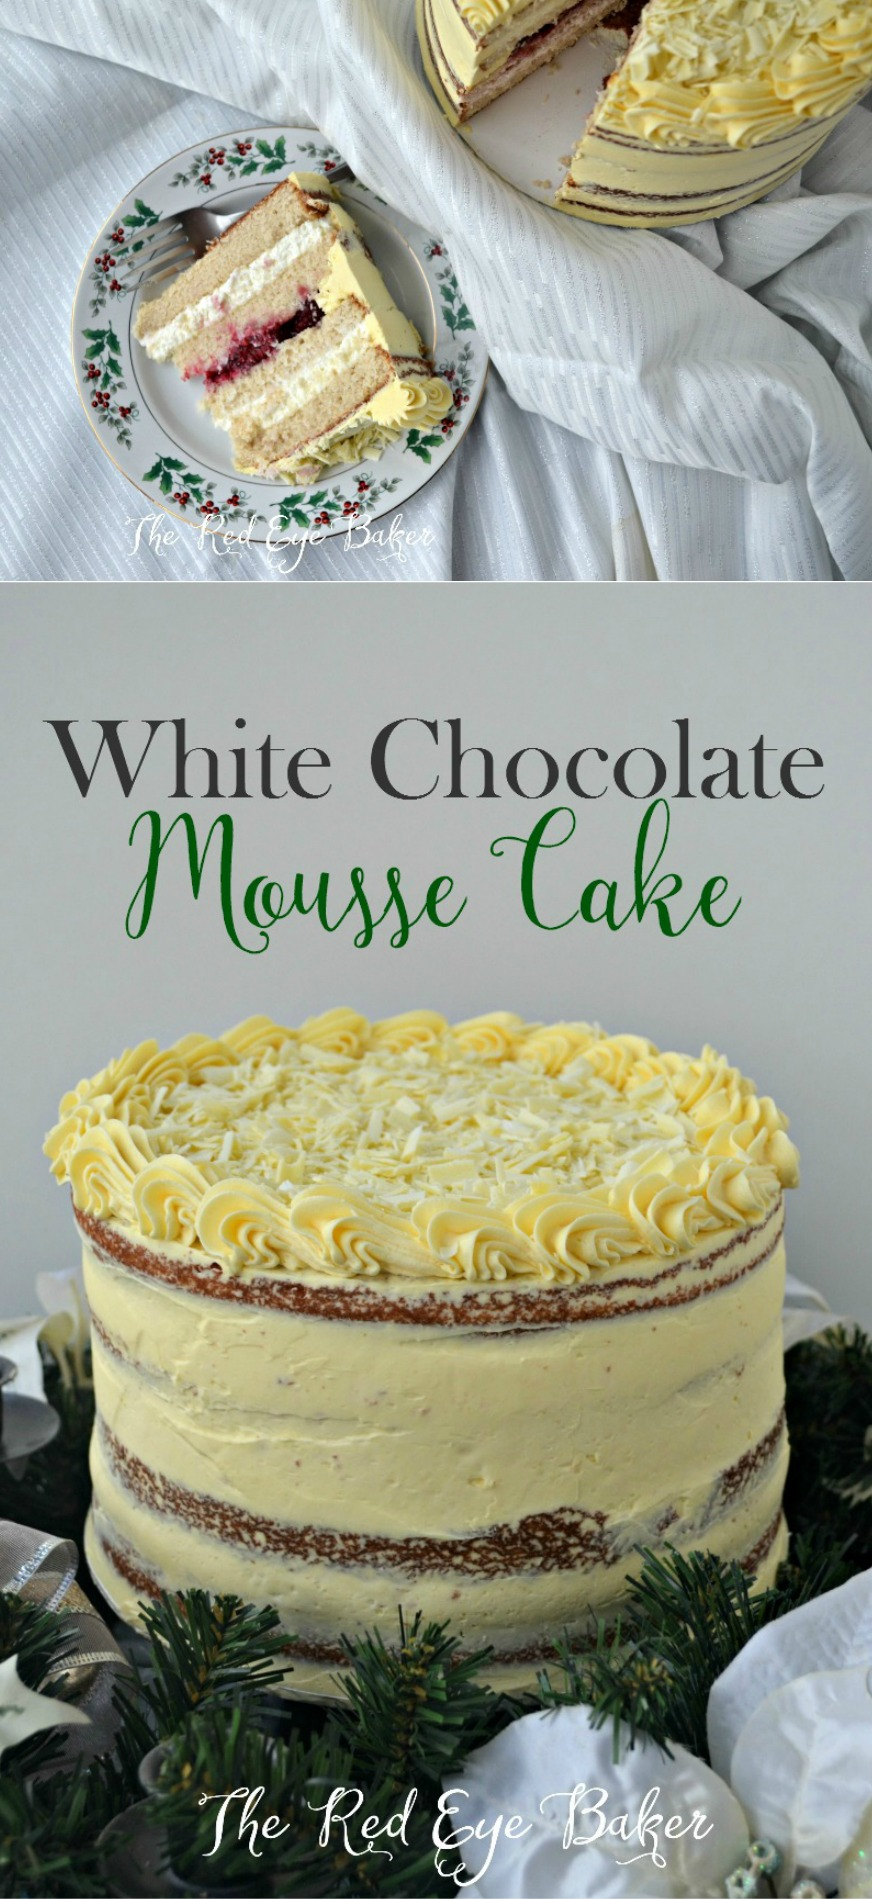 White Chocolate Mousse Cake | Bring a little rustic charm to your holiday table with this White Chocolate Mousse Cake. Layers of delicious vanilla cake, filled with fluffy white chocolate mousse & tart raspberries, covered in a silky layer of French buttercream.